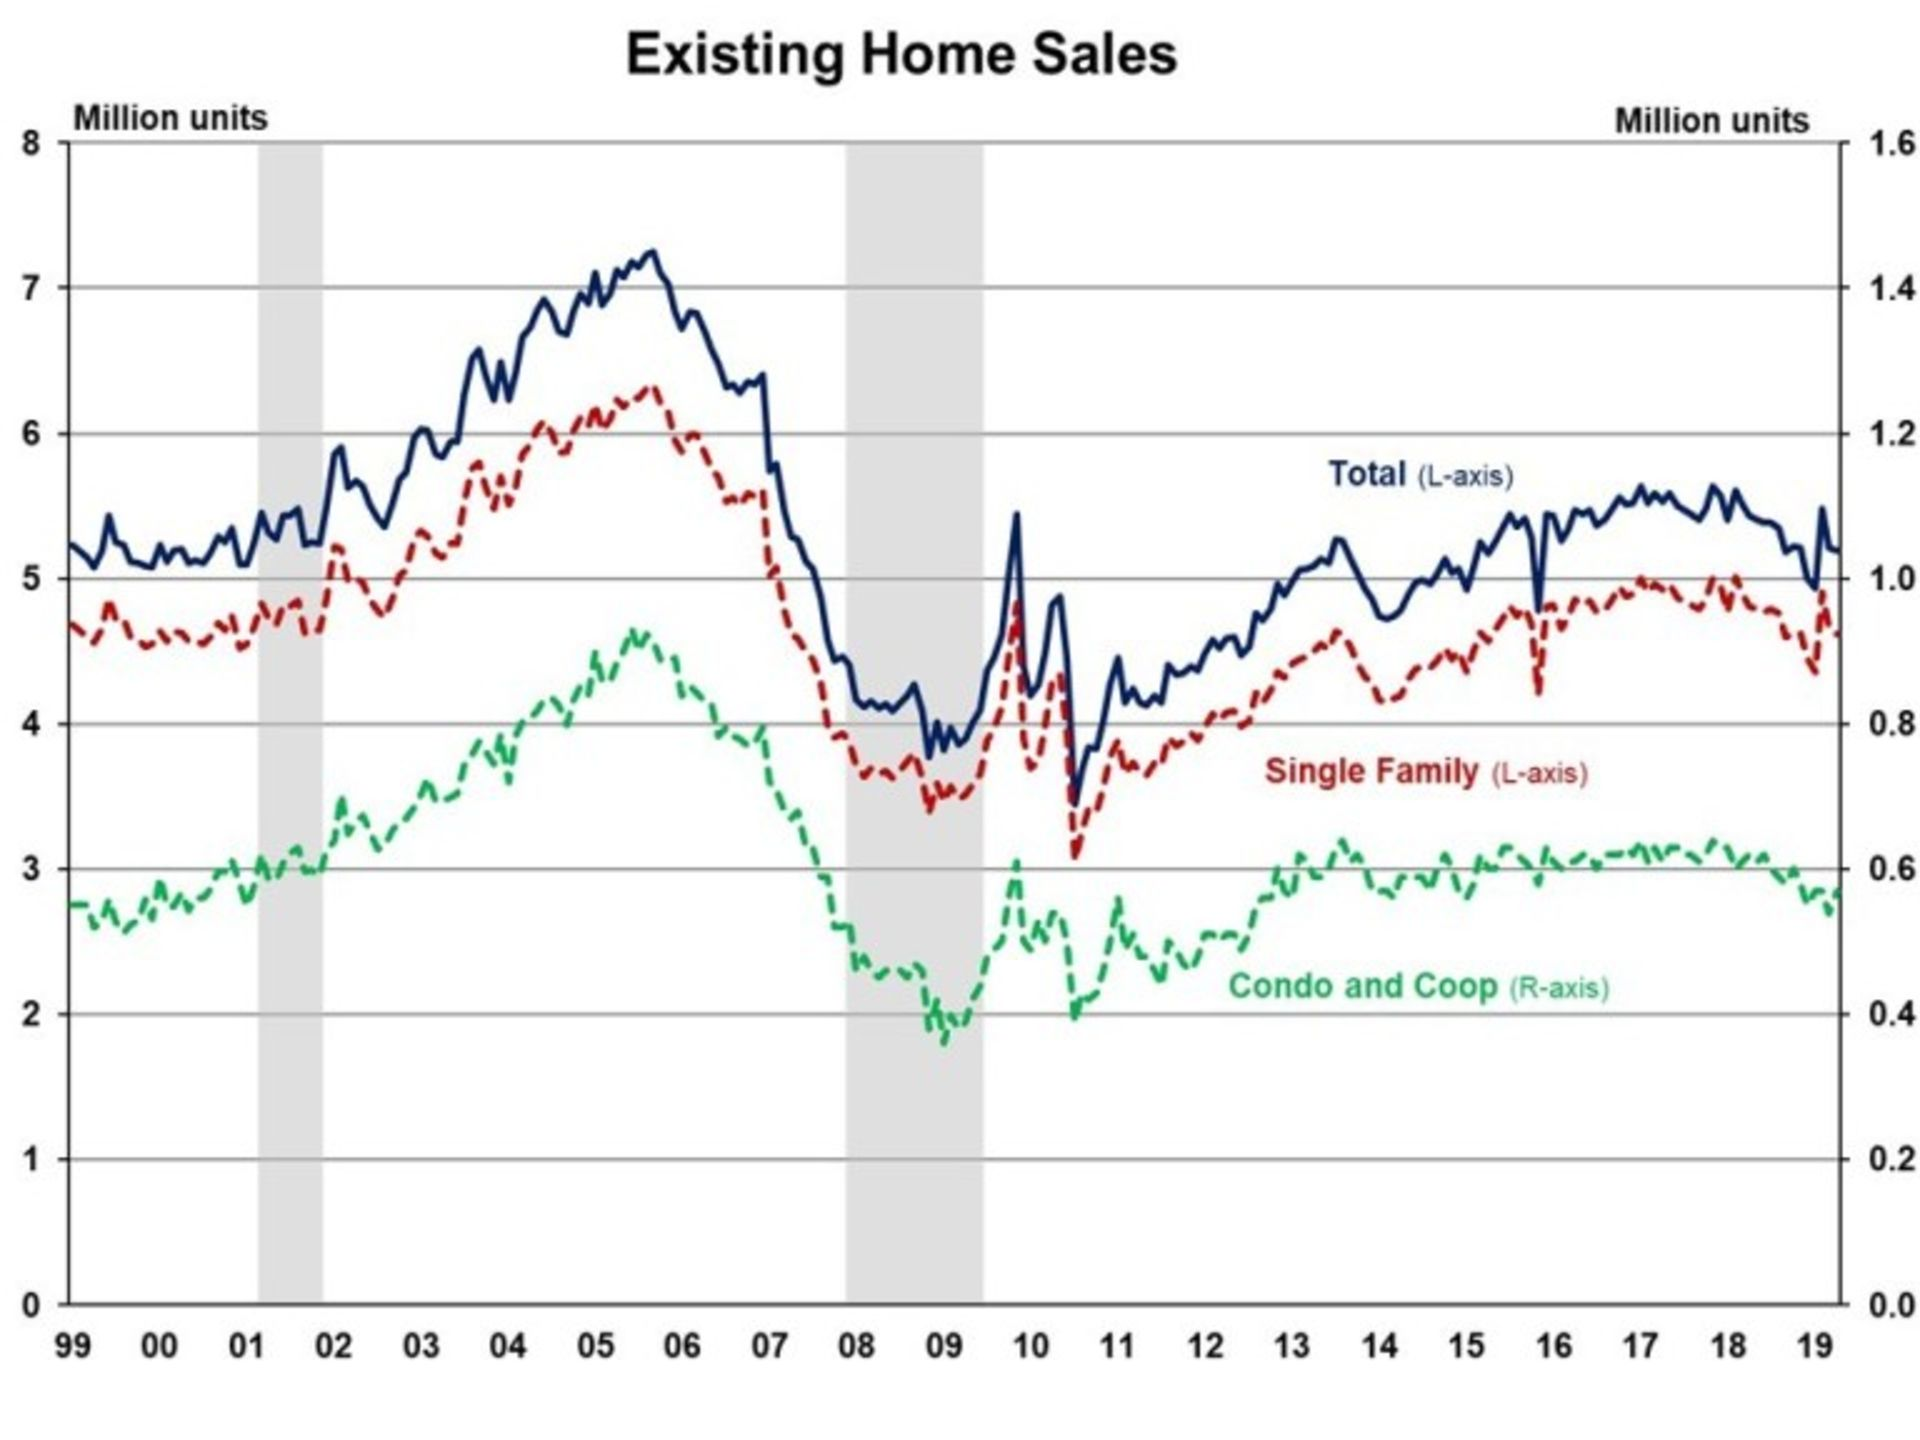 Existing Home Sales Slightly Down in April